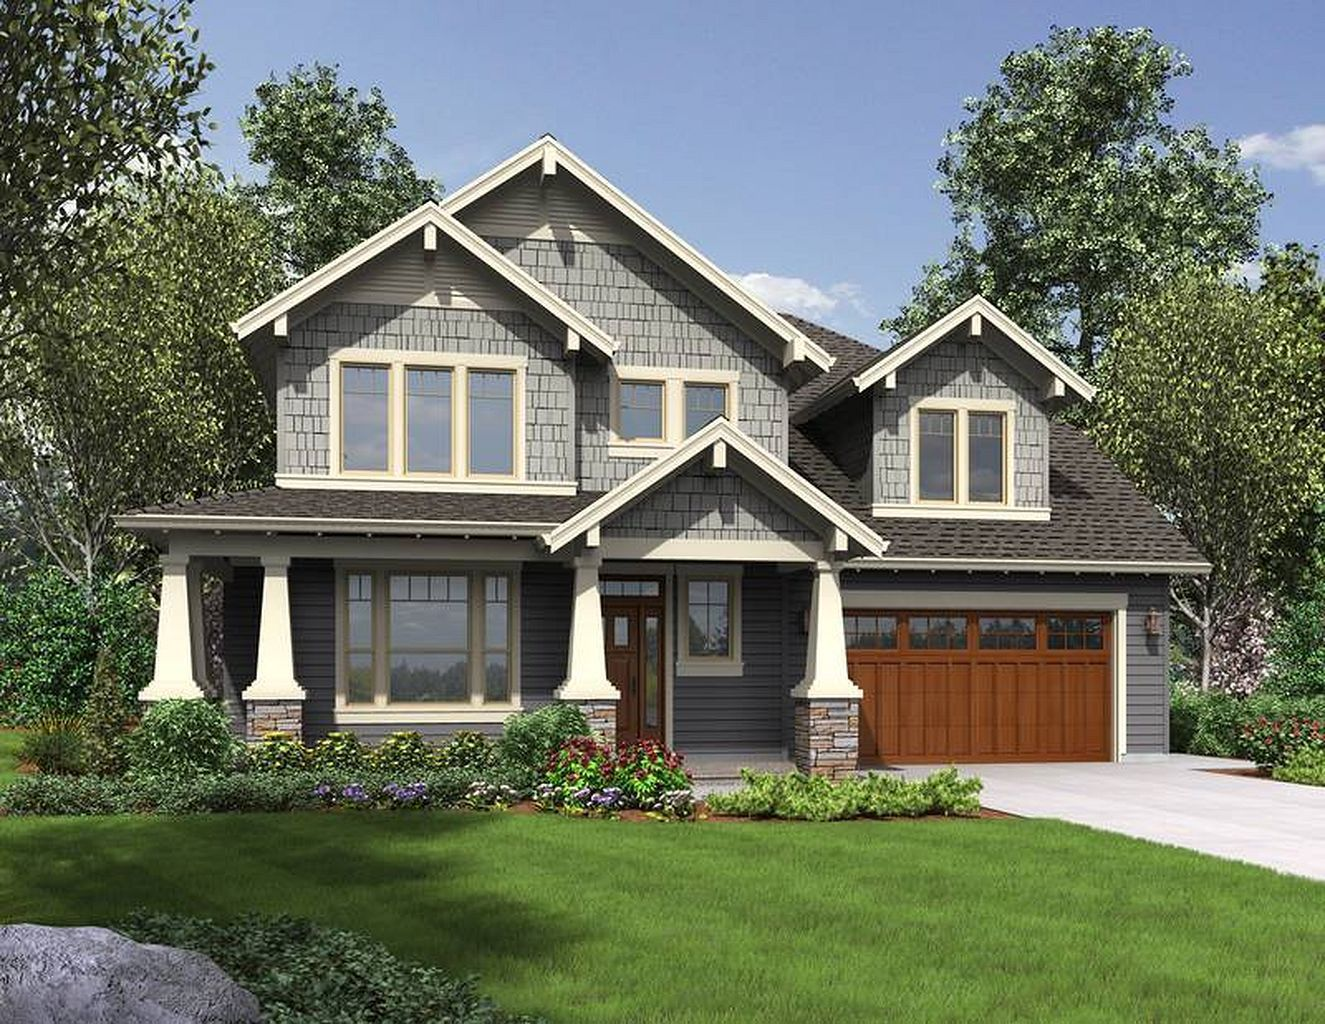 Craftsman style homes exterior ideas 67 house plans for Craftsman style home builders